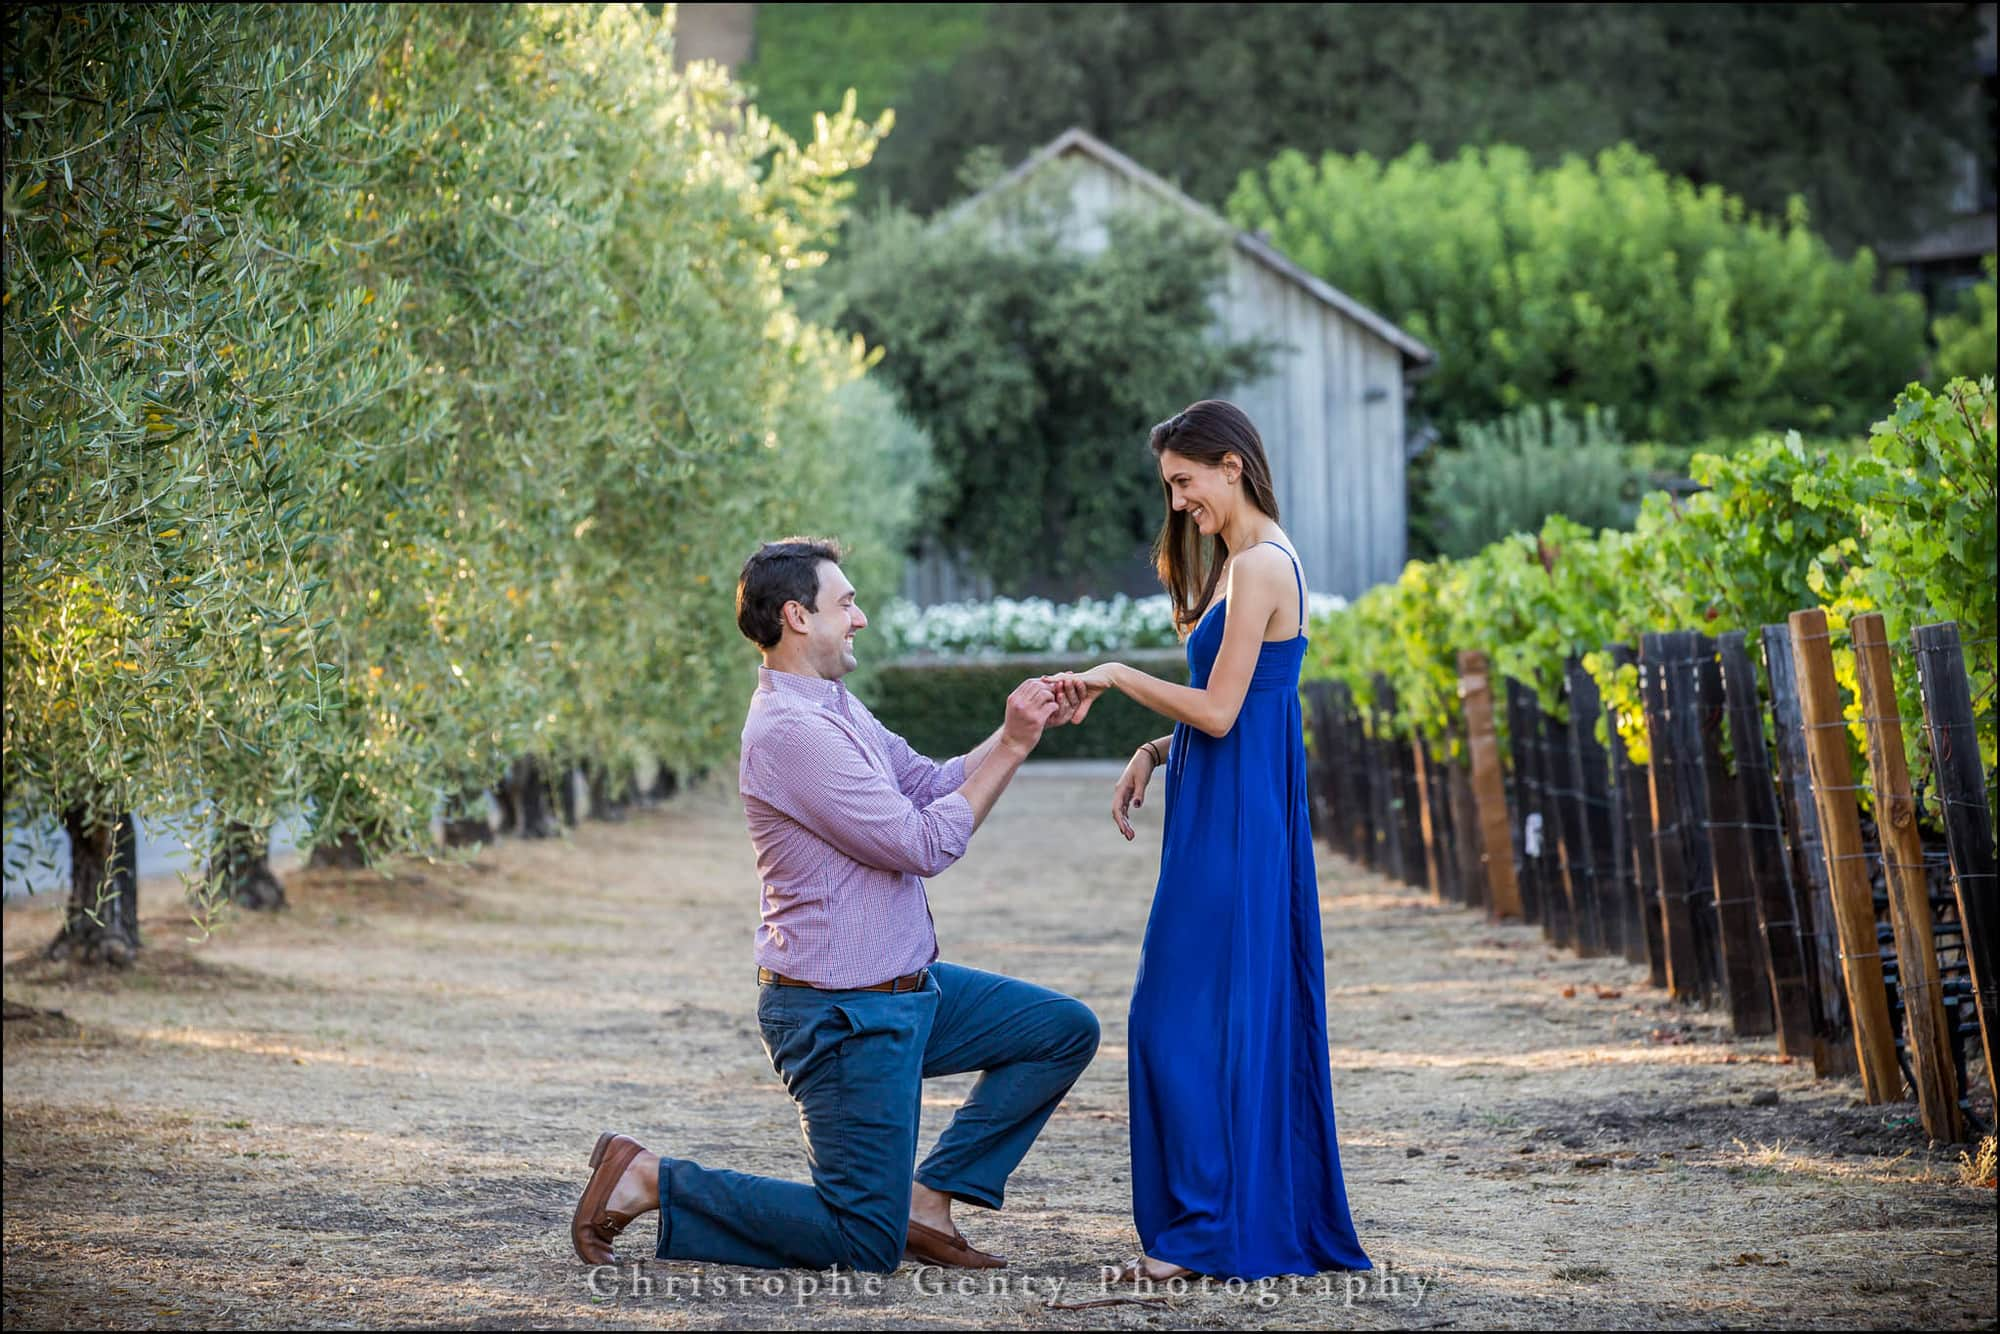 Marriage Marriage Proposal Photography at Meadowood Napa Valley Proposal Photography in the Napa Valley Amizetta Winery